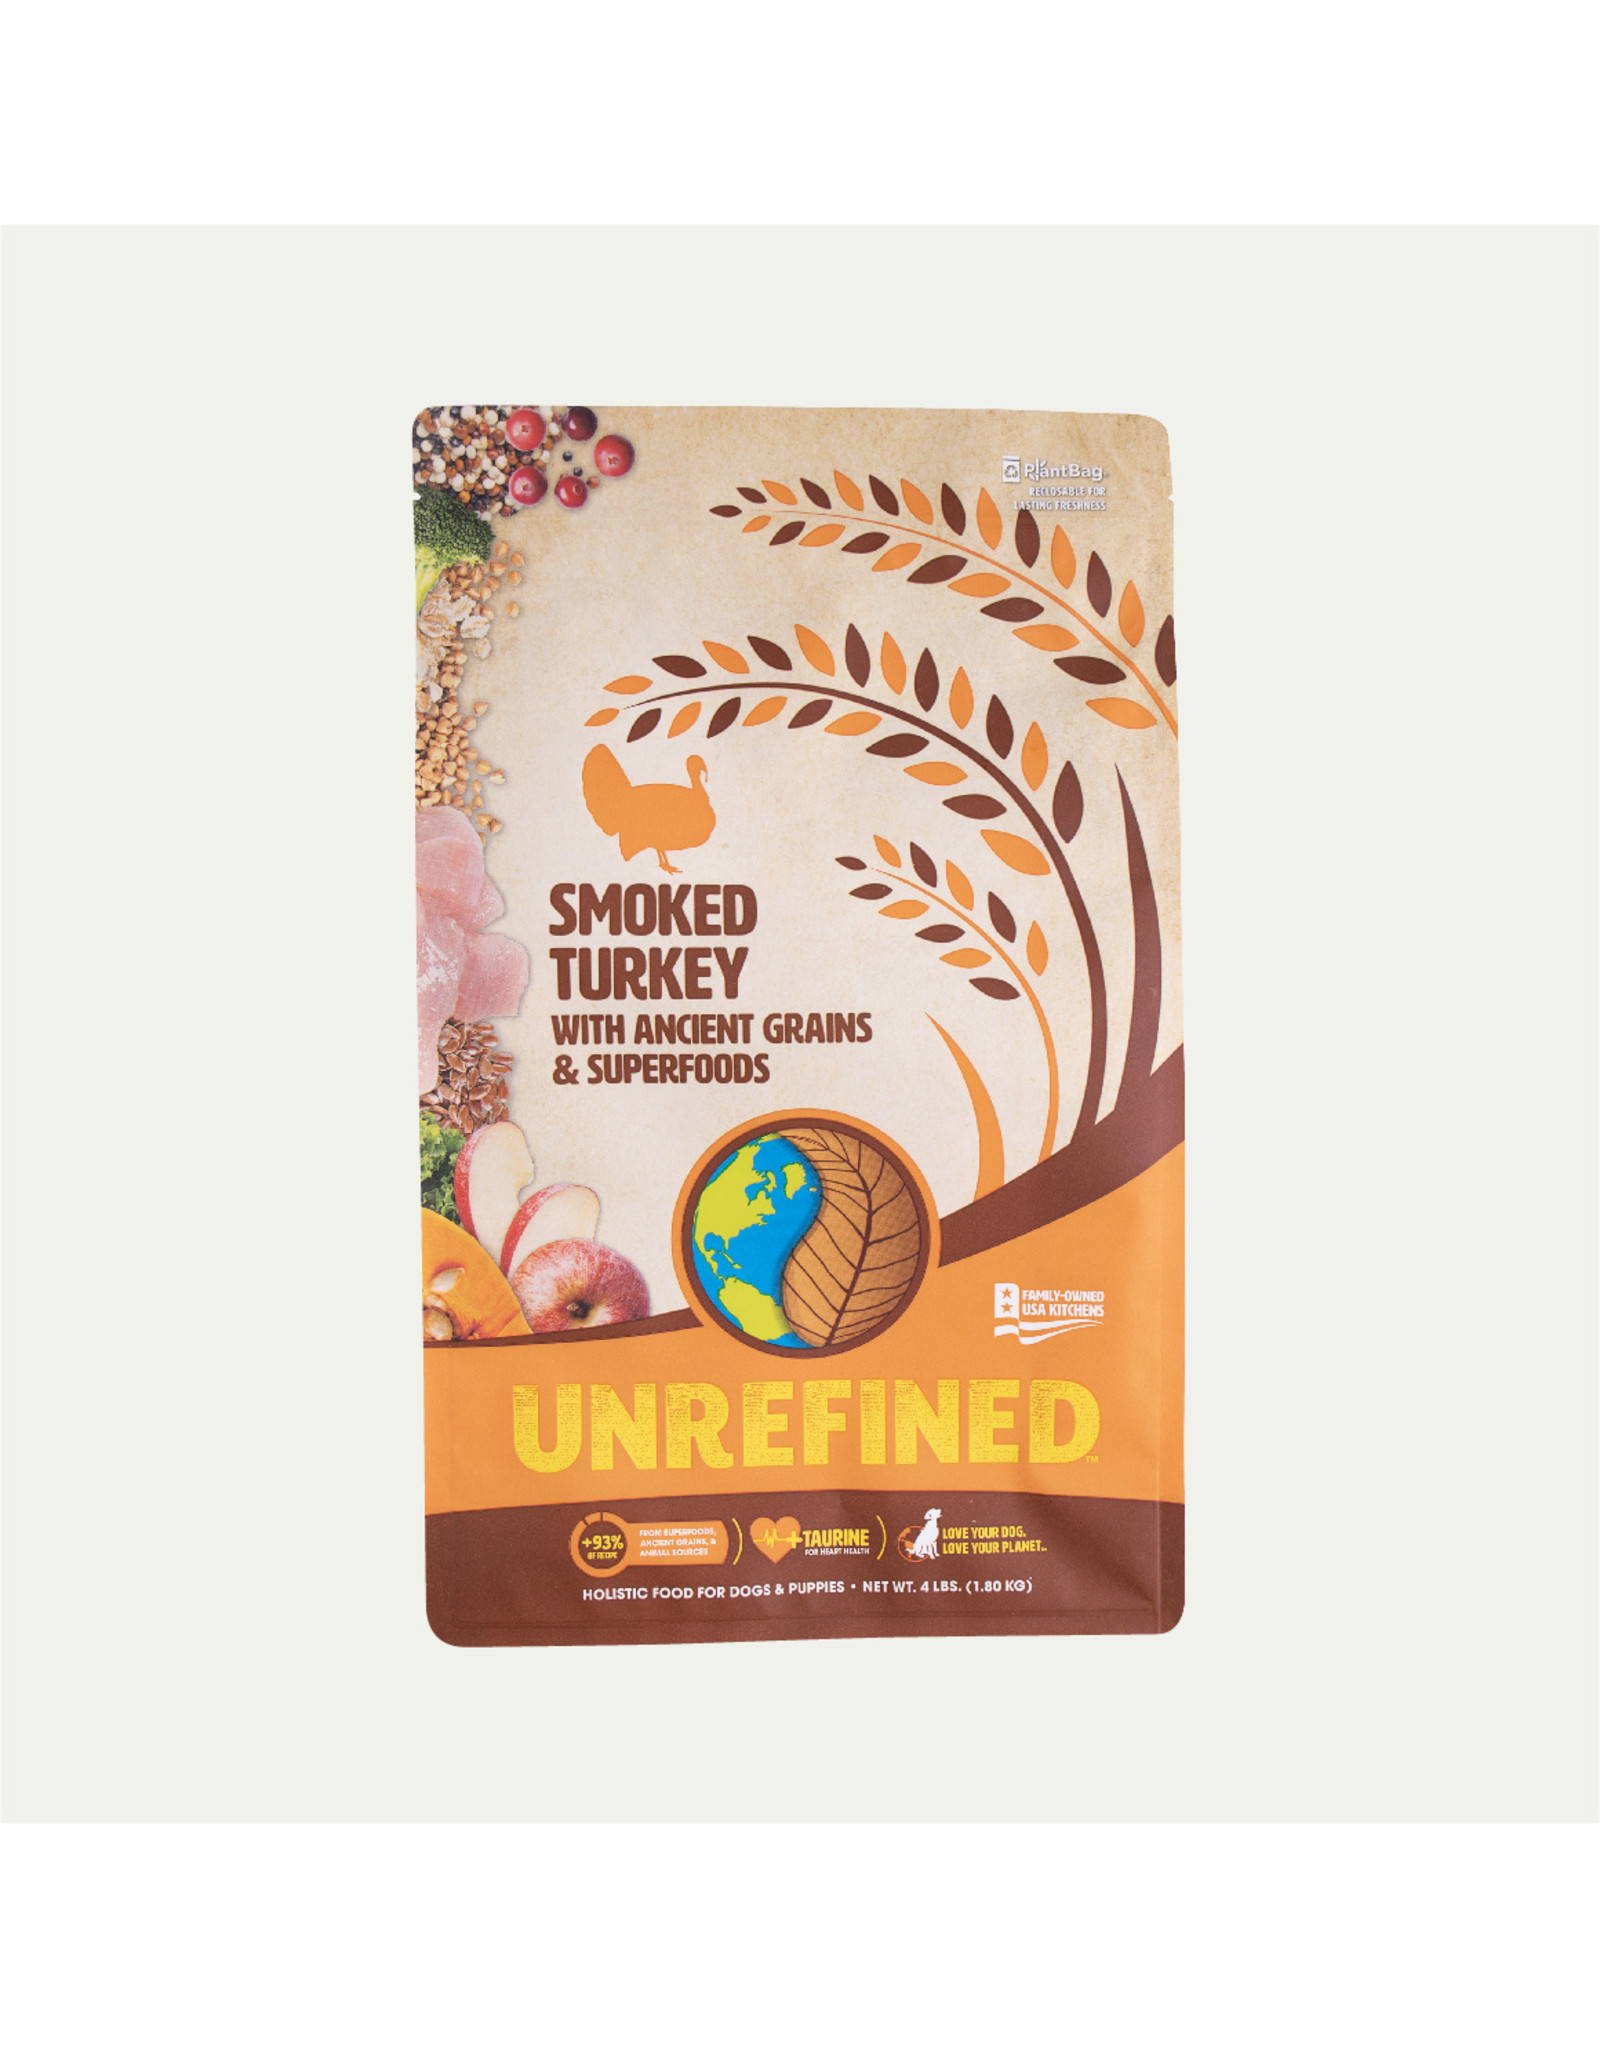 Earthborn Earthborn Holistic Dry Dog Food UNREFINED Smoked Turkey with Ancient Grains and Superfoods Grain Inclusive